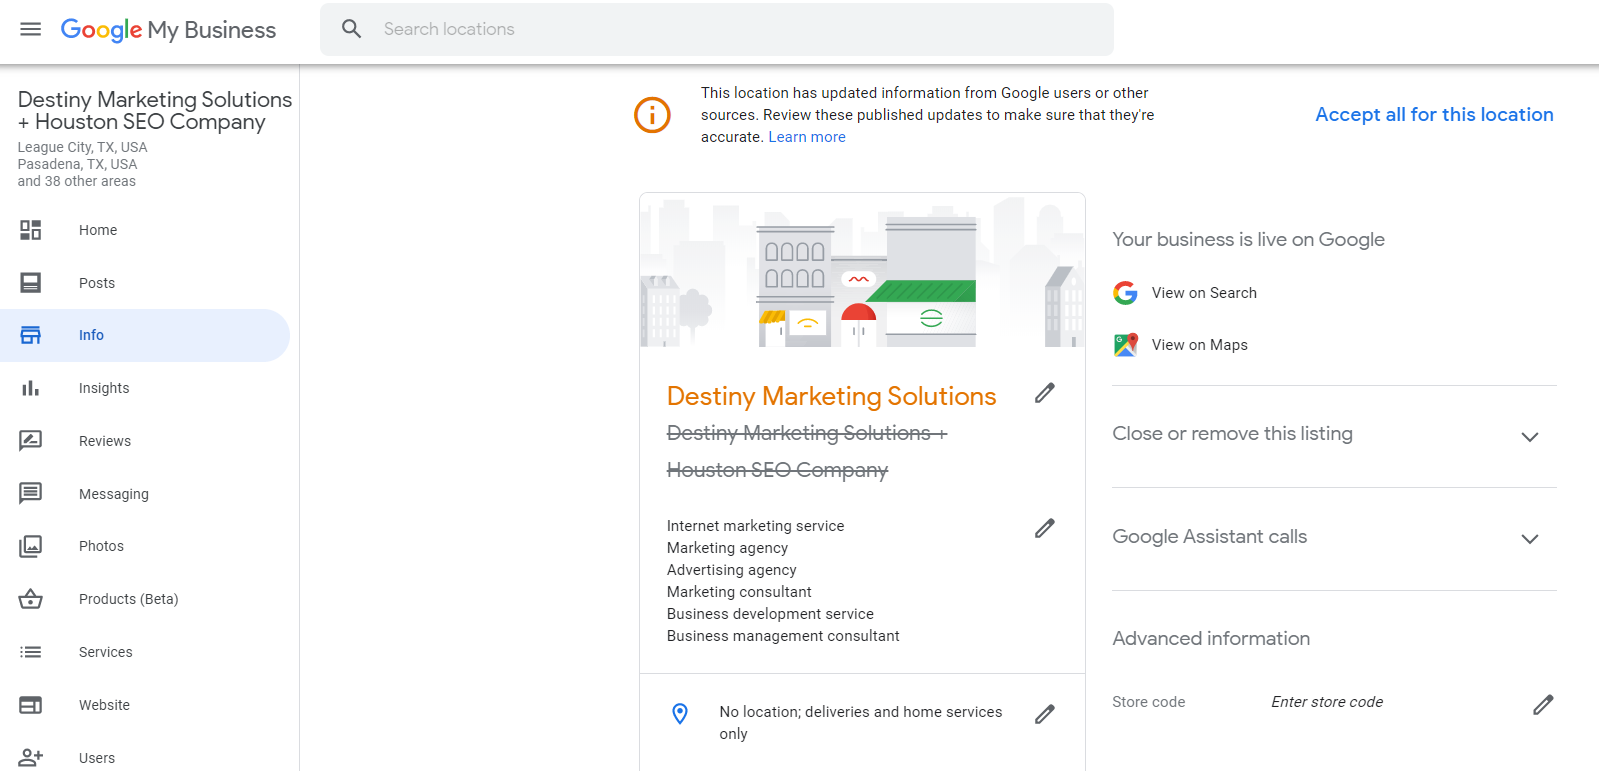 picture paints a thousand words for your google my business destiny marketing solutions